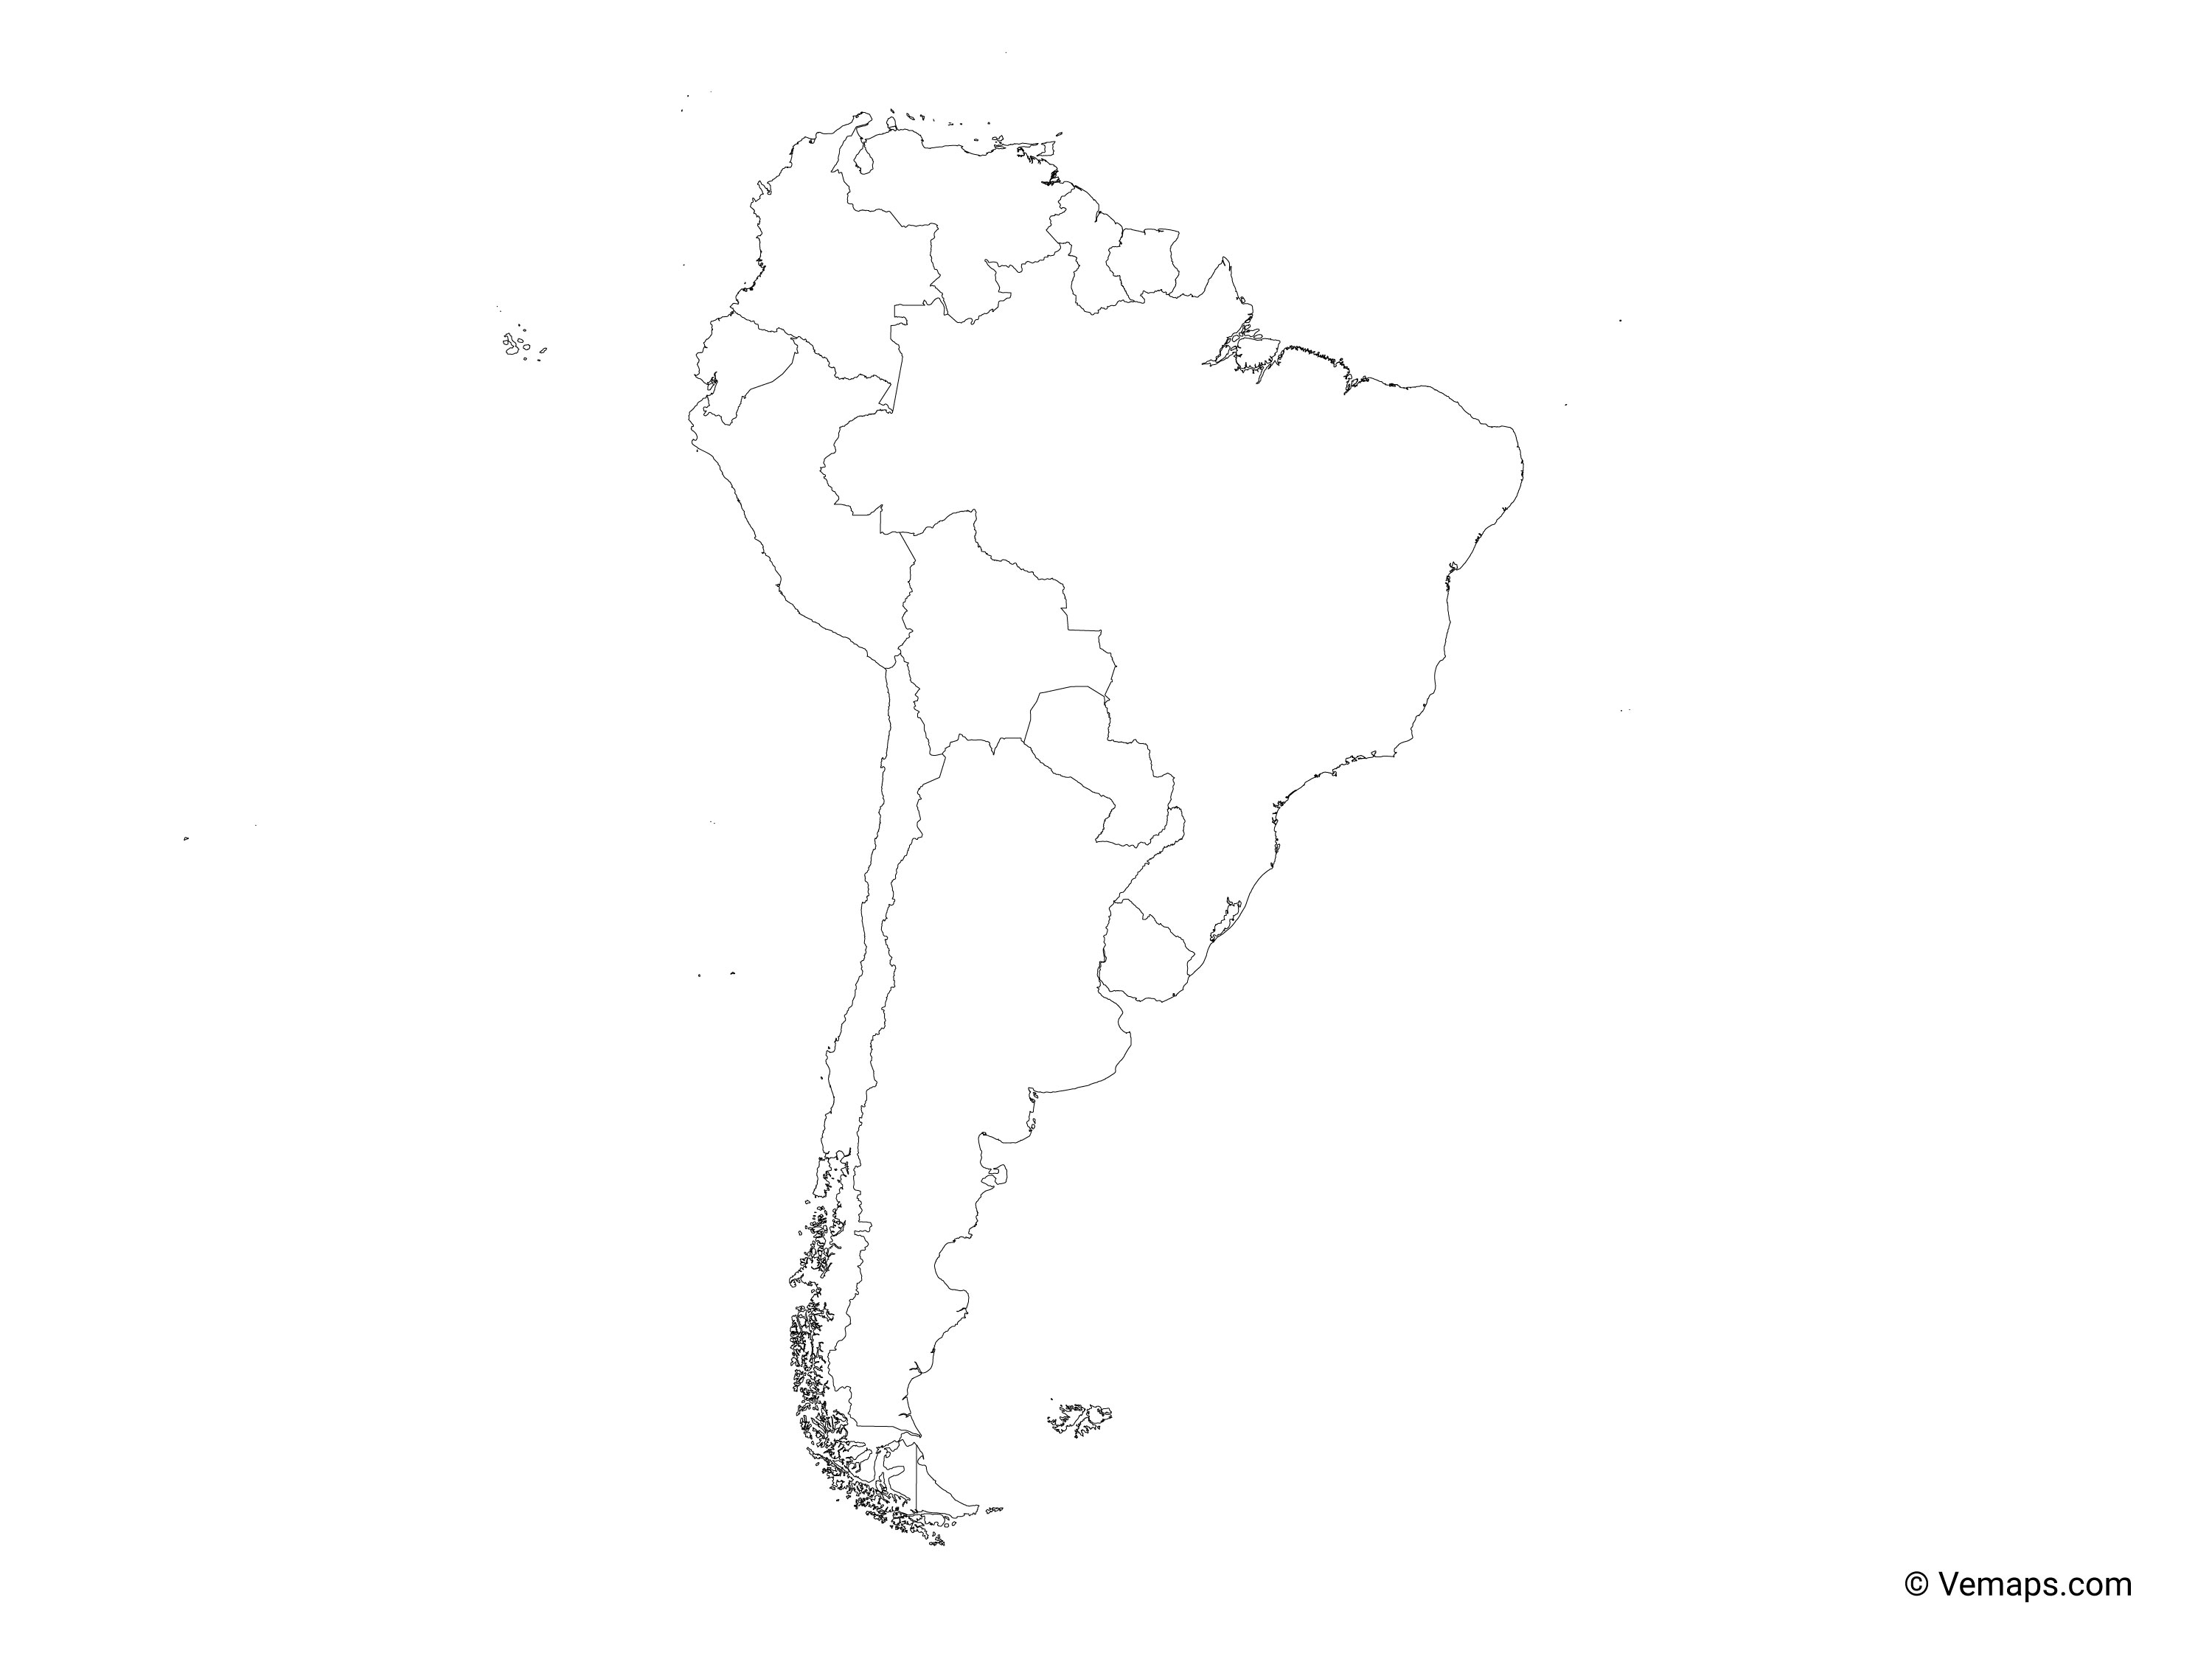 Outline Map of South America with Countries | Free Vector Maps